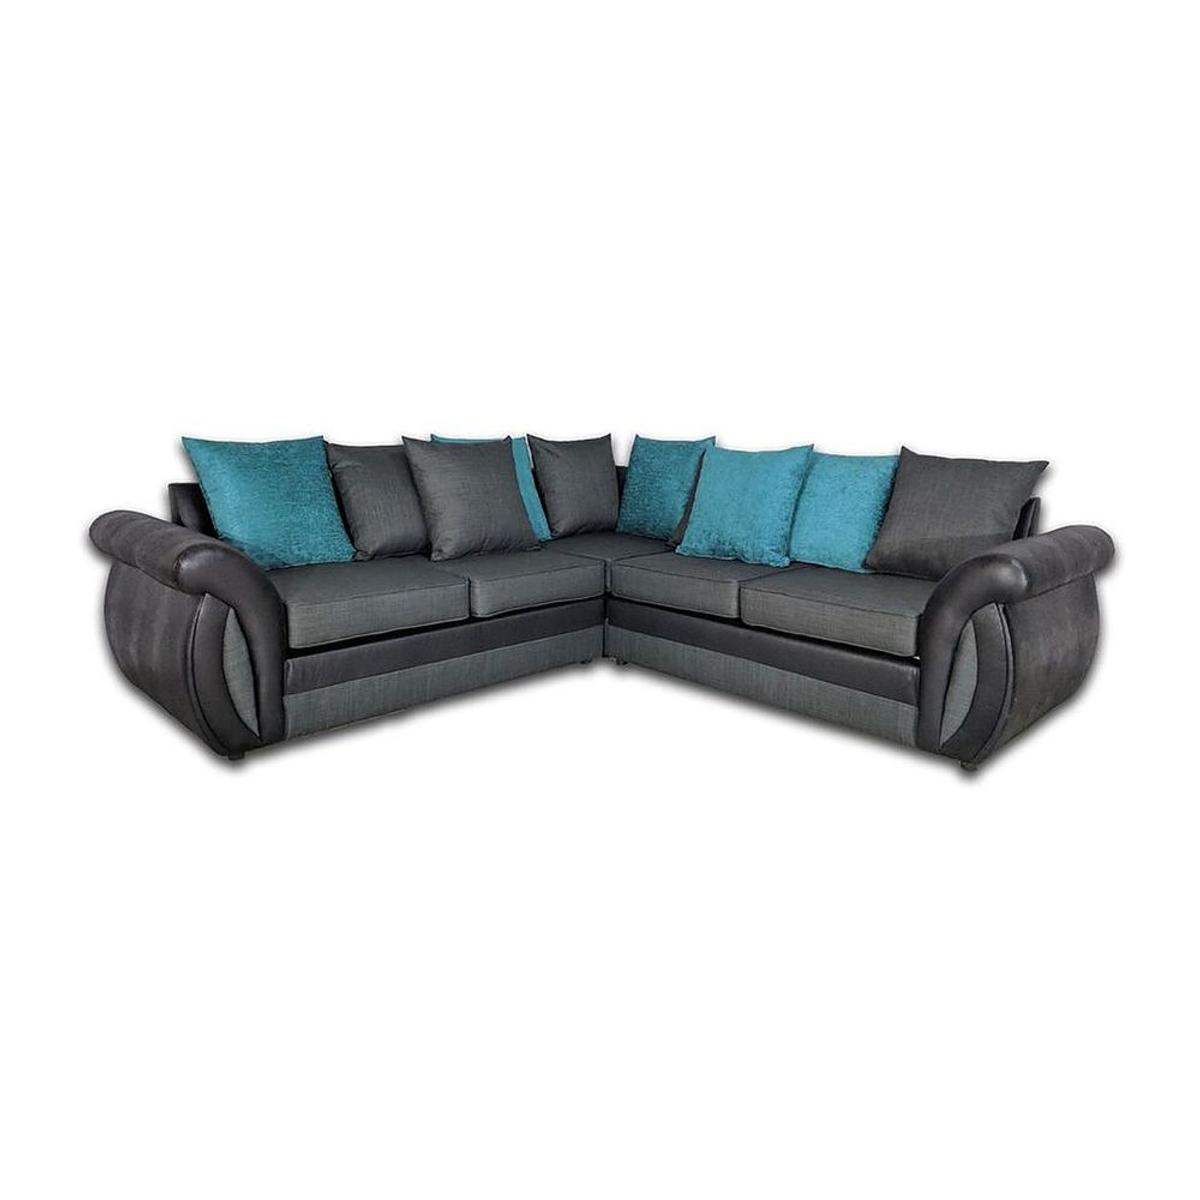 Incredible Brand New G Shannon Corner Sofa On Sale Pabps2019 Chair Design Images Pabps2019Com